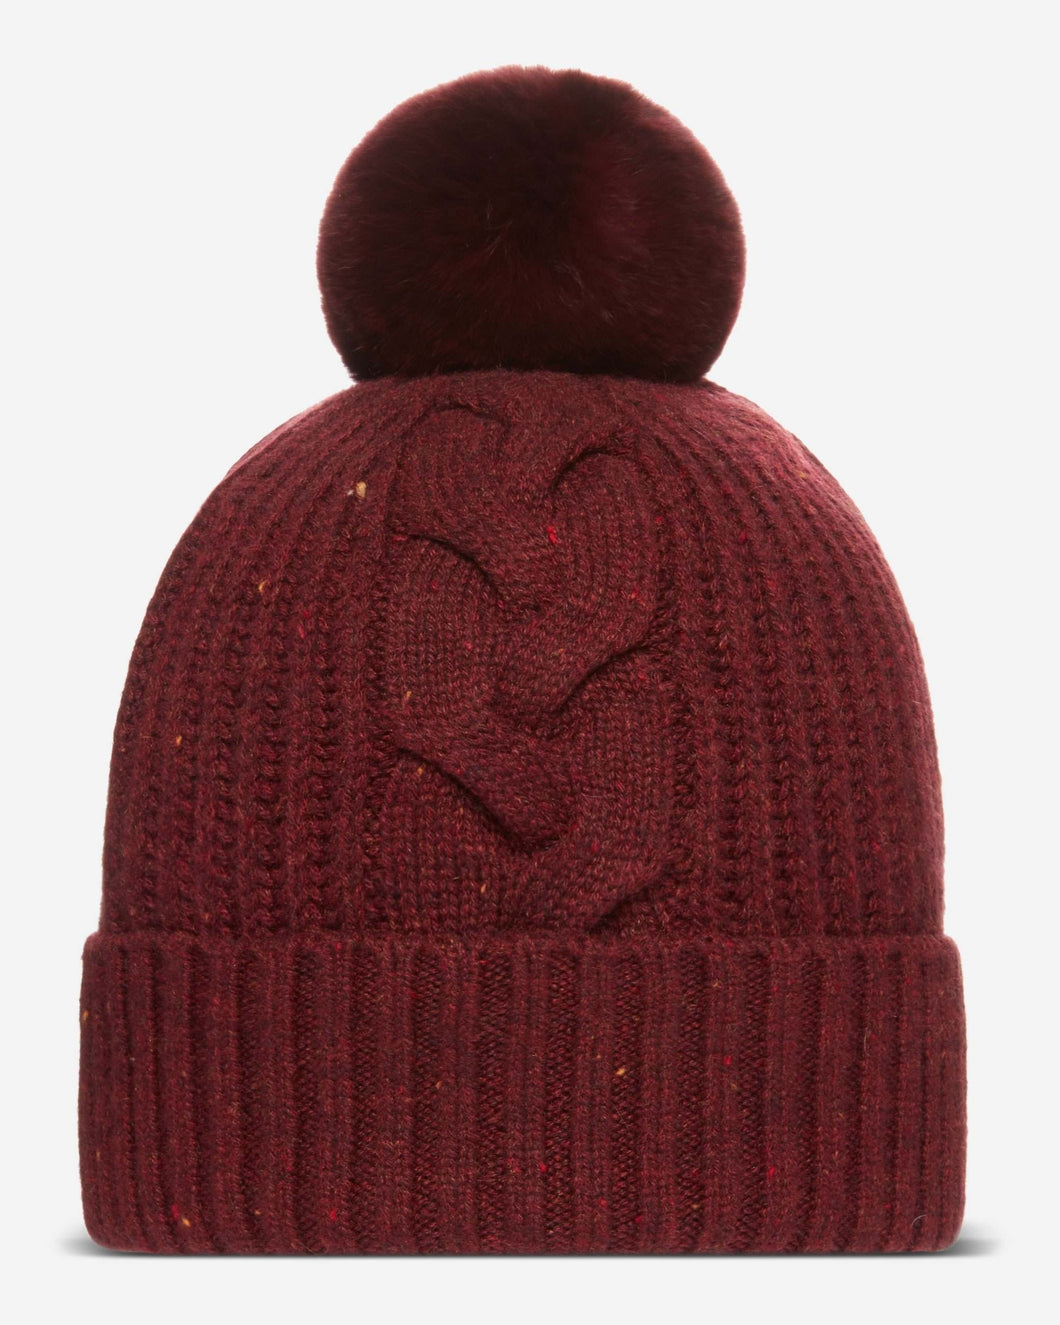 Fur Bobble Cable Cashmere Hat Burgundy Red + Burgundy Red Fur